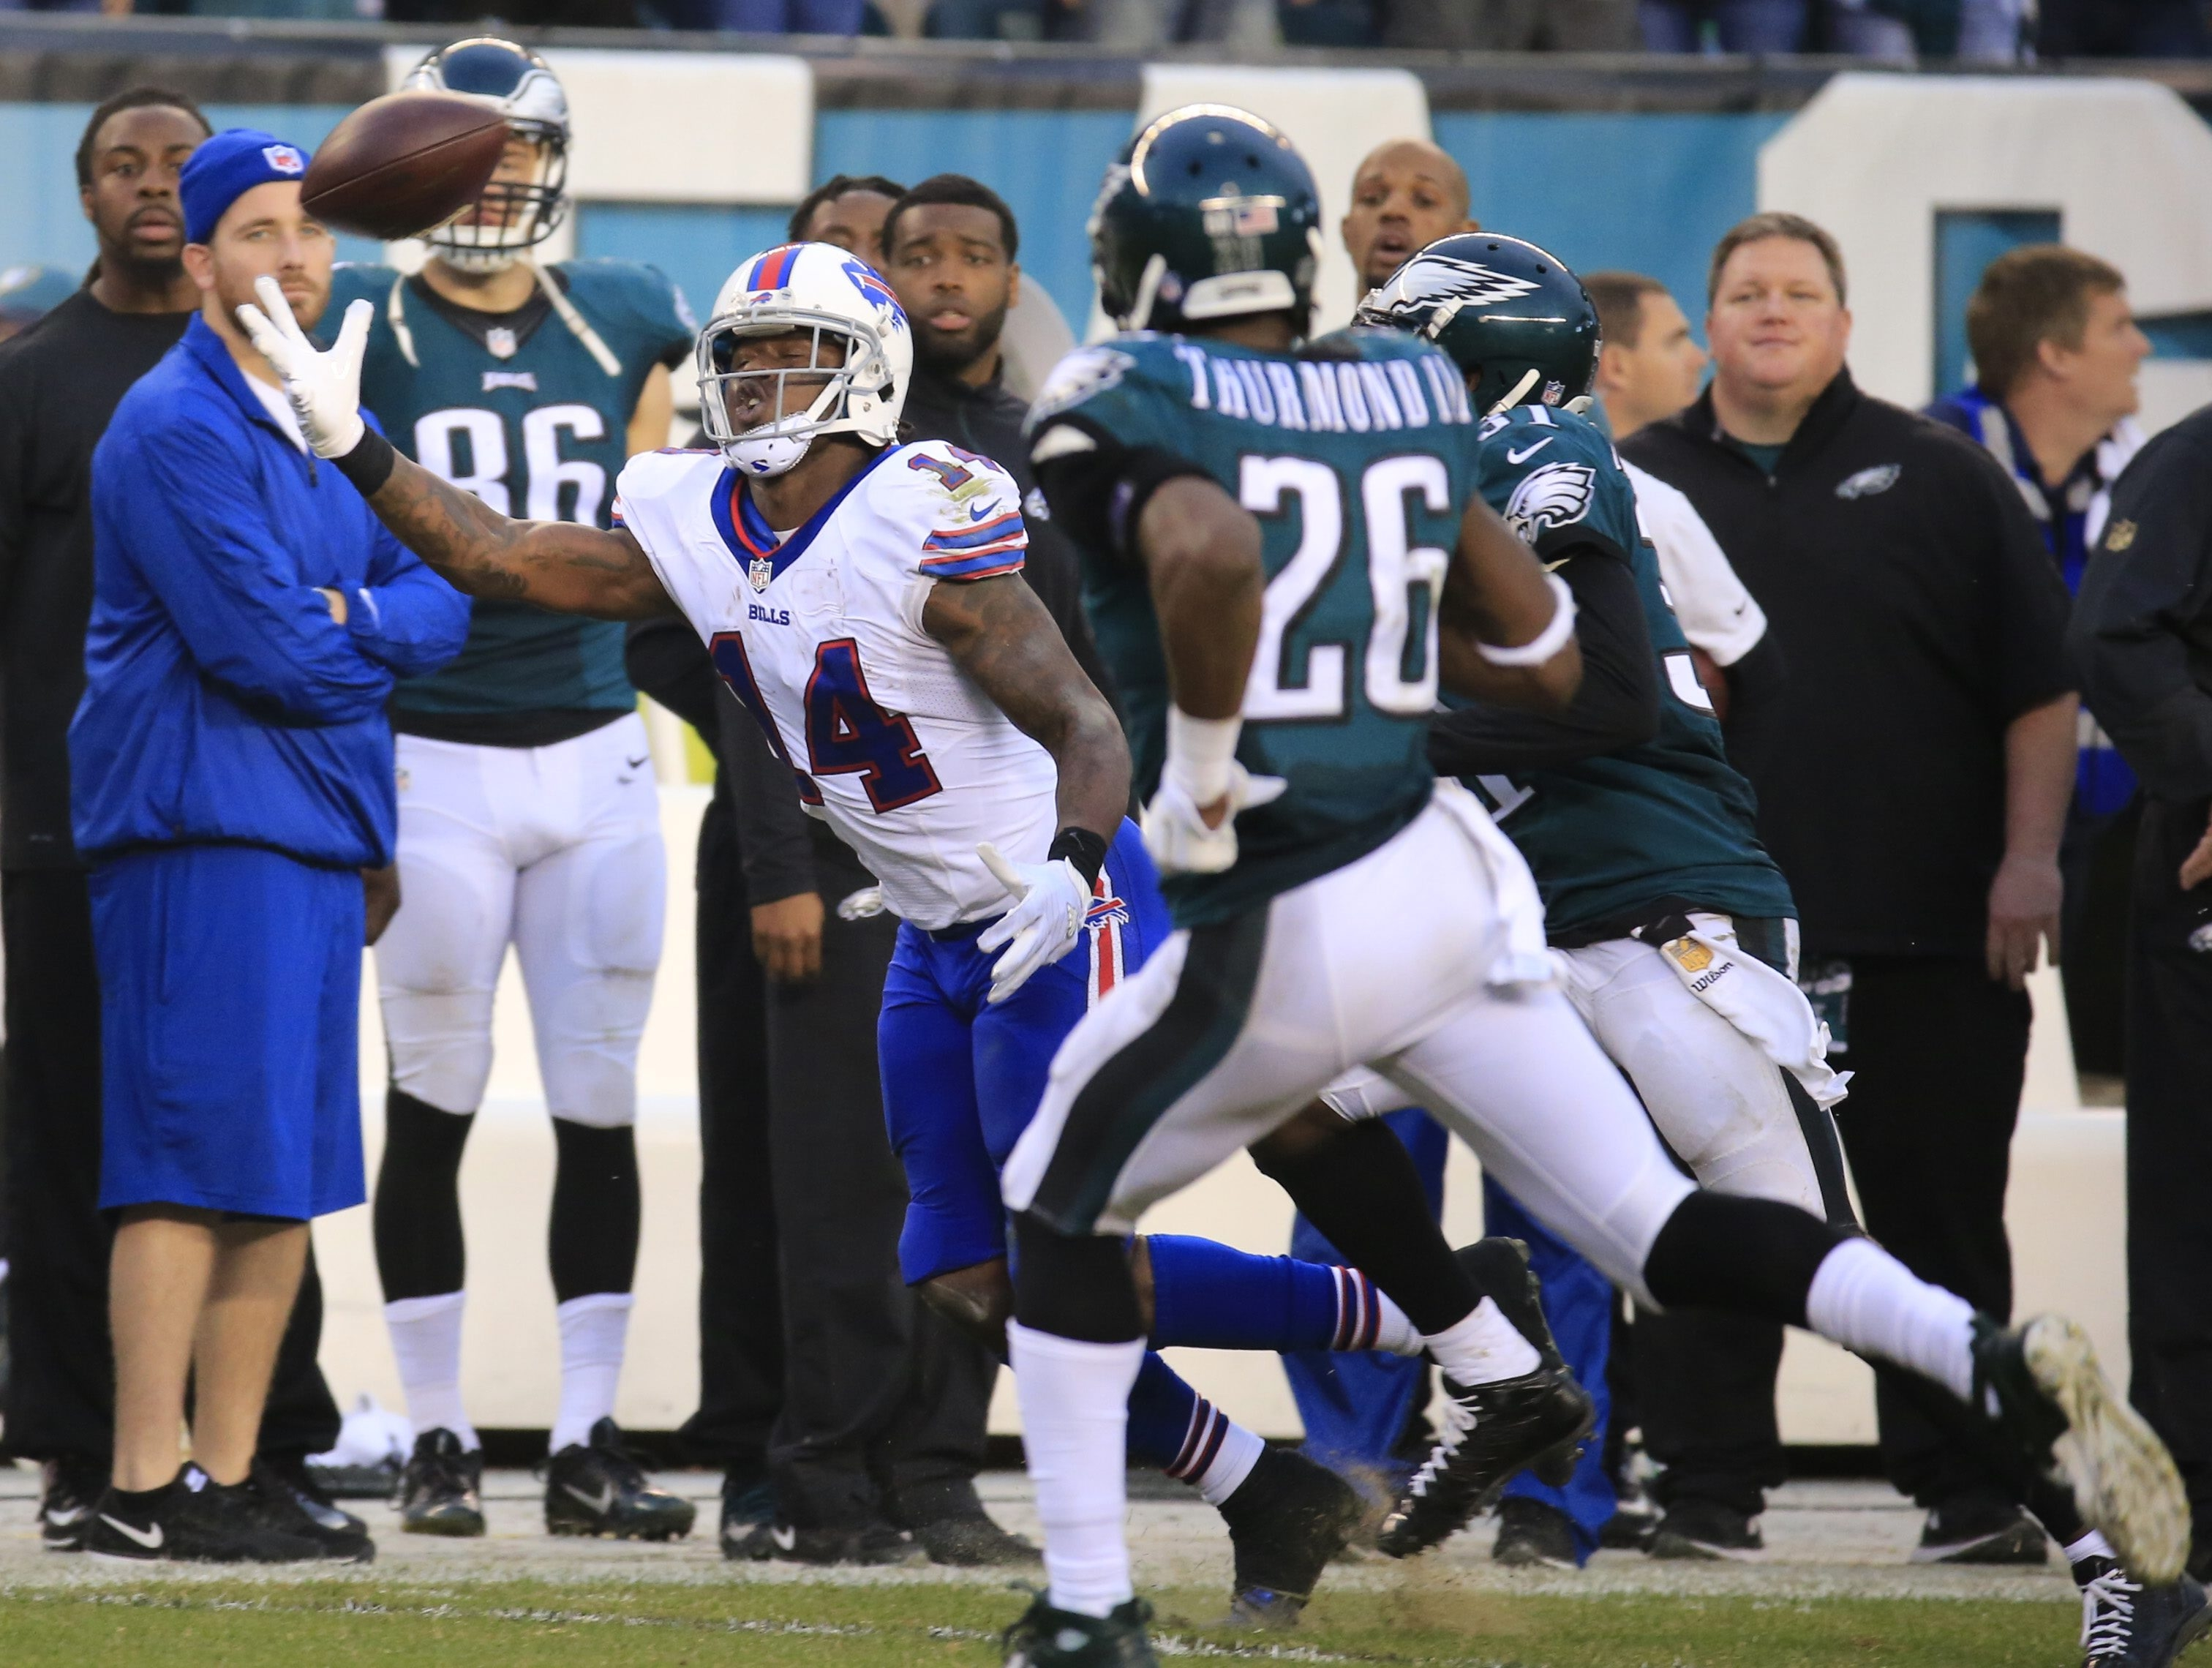 Buffalo Bills  Sammy Watkins cannot makes a 4th quarter catch against Philadelphia Eagles at Lincoln Financial Field on Sunday, Dec. 13, 2015.  (Harry Scull Jr./Buffalo News)